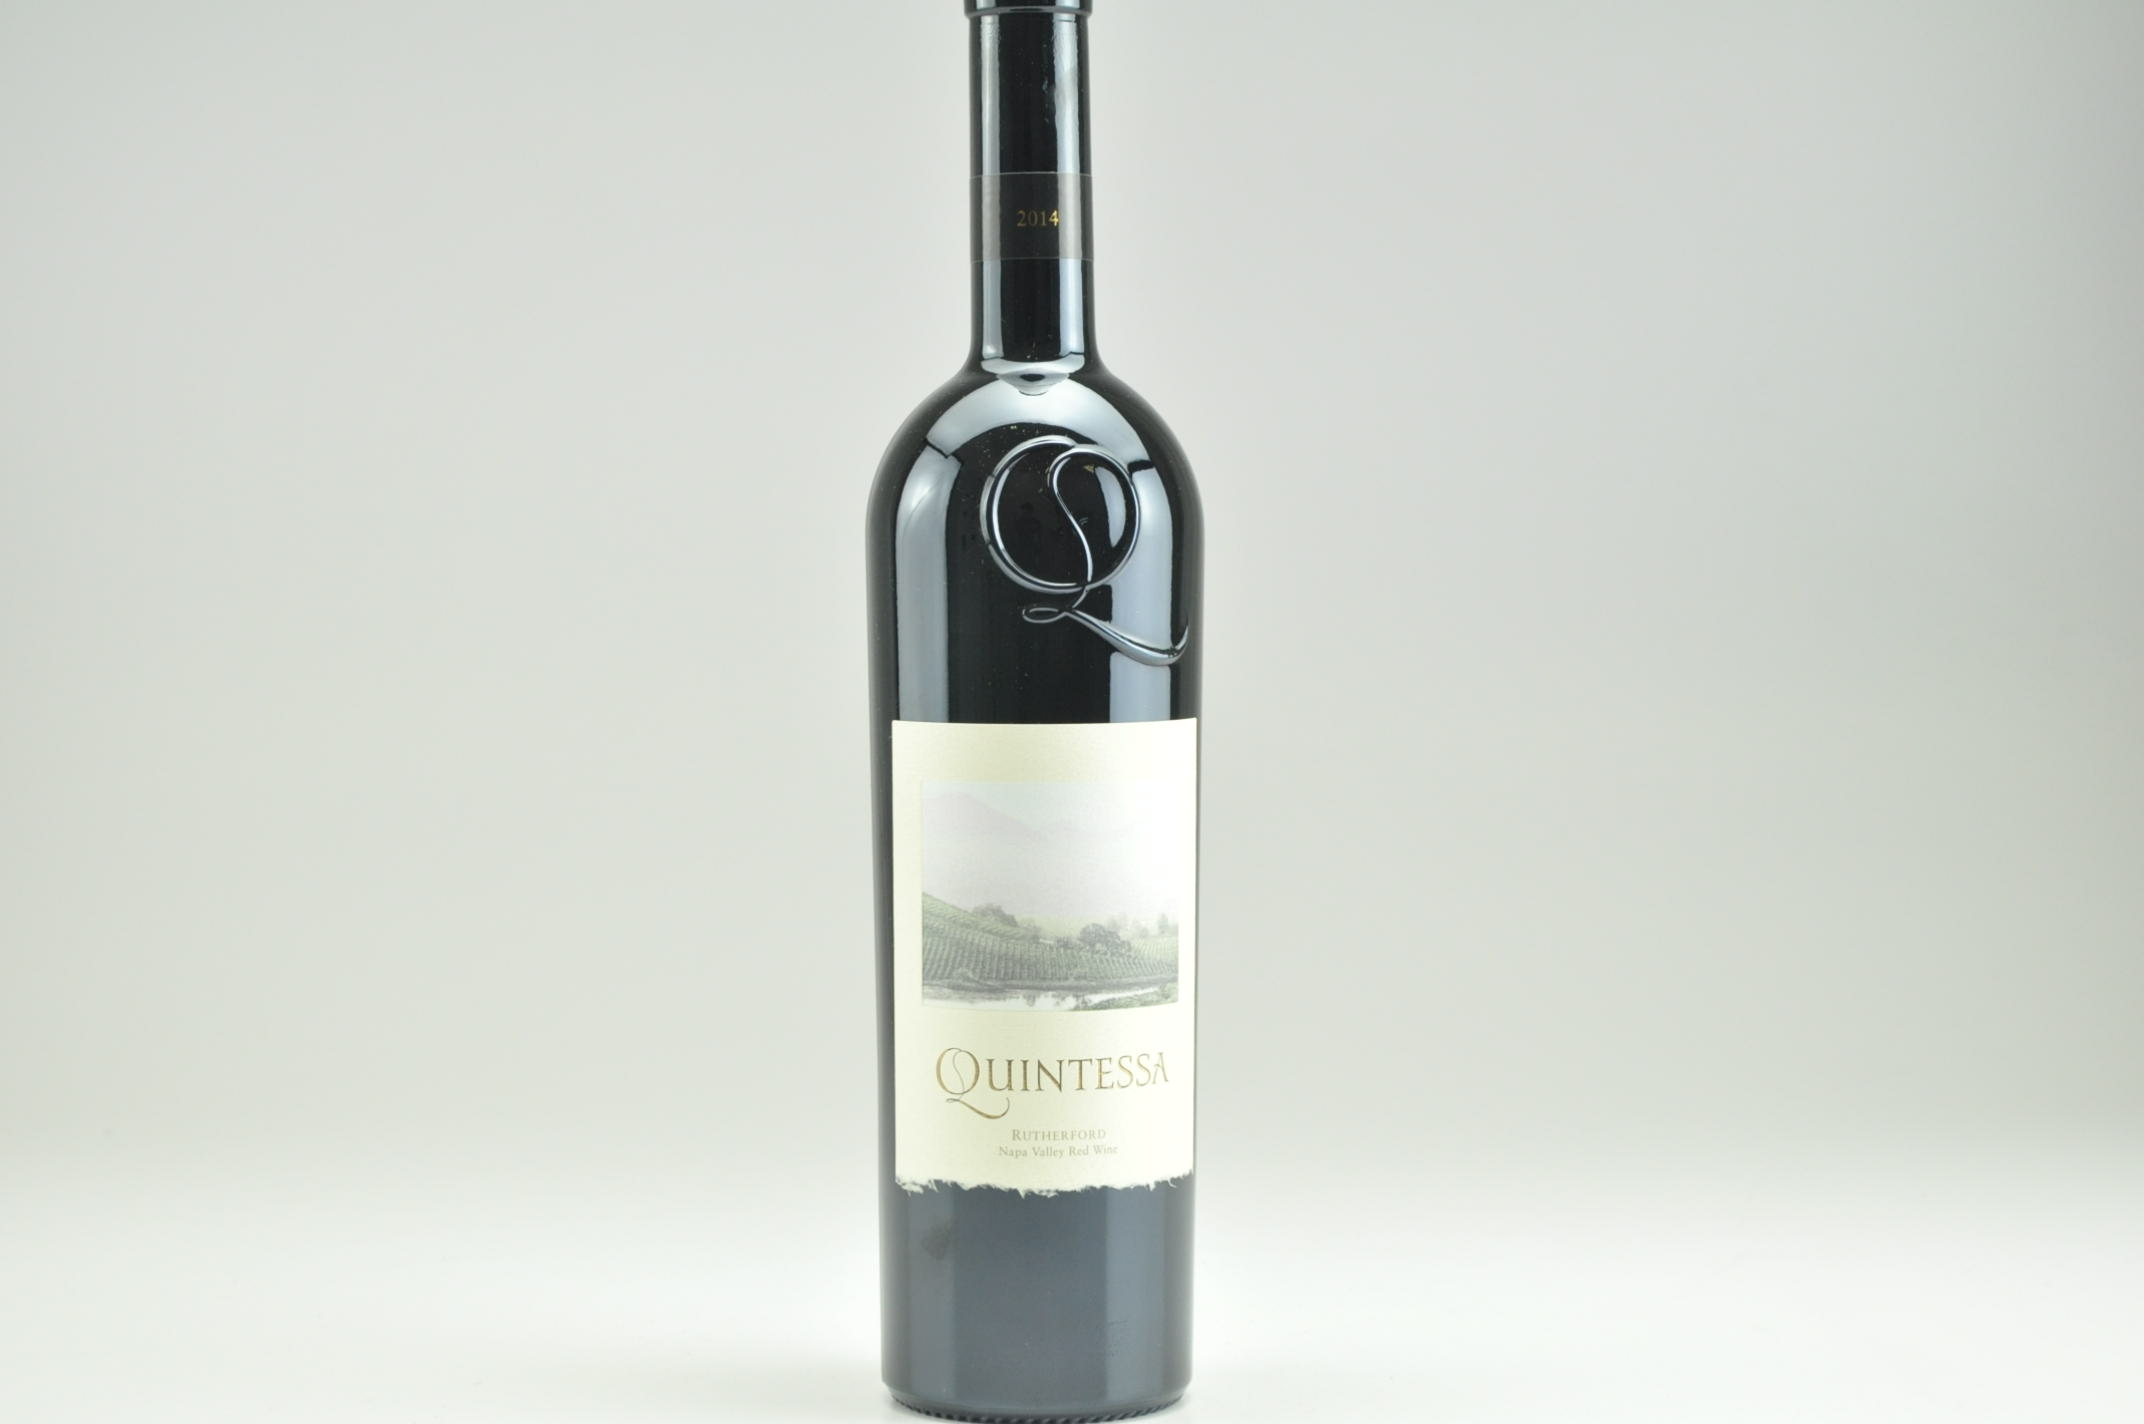 2014 Quintessa Proprietary Red Wine, Rutherford RP--94 JS--97